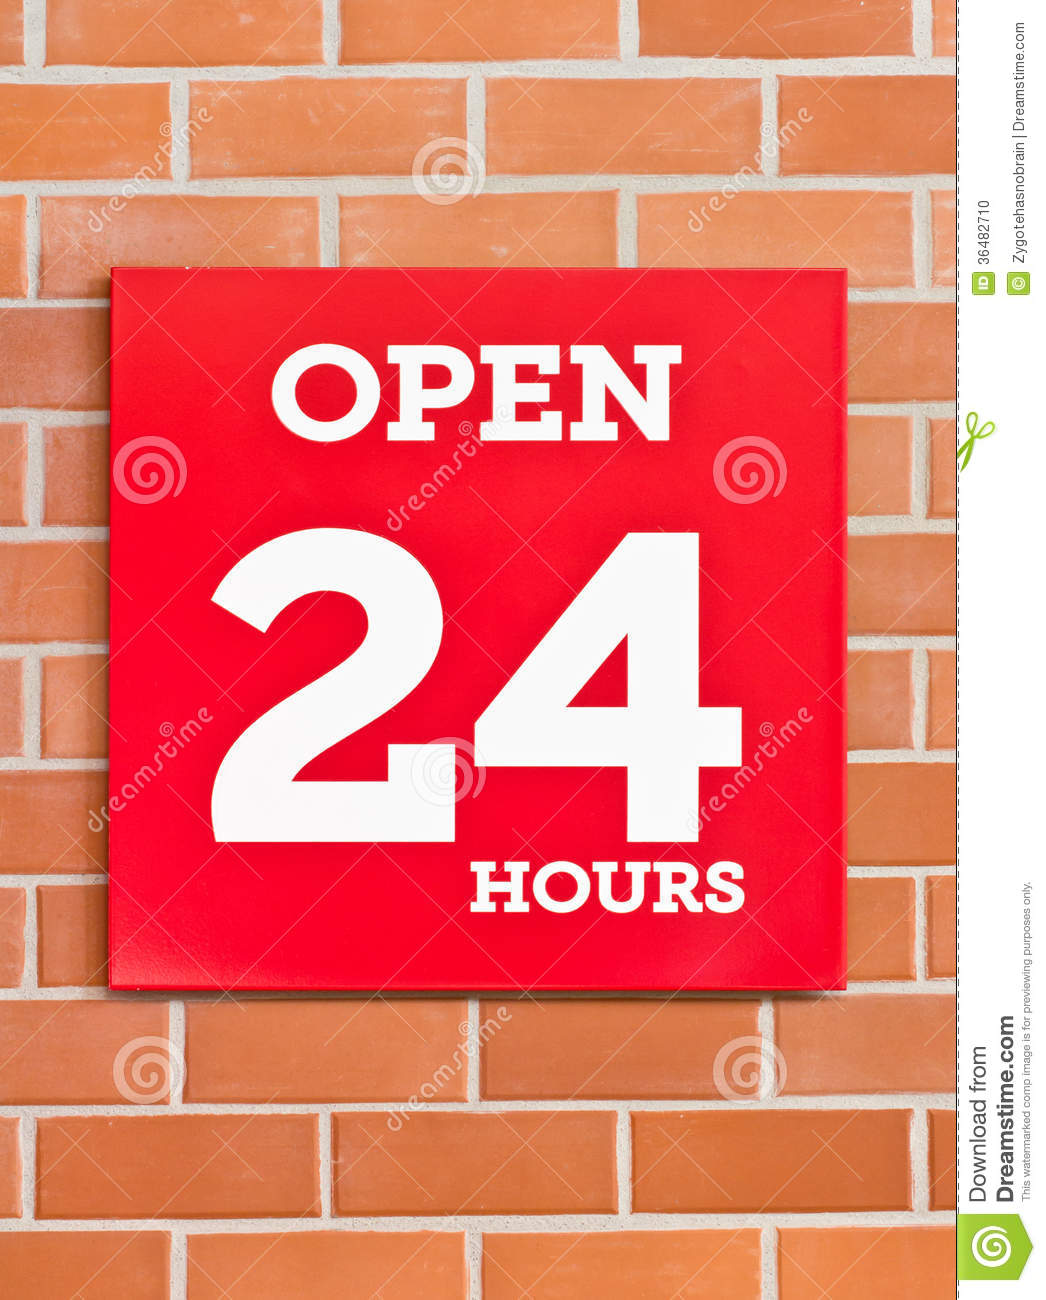 24 Hours Red Signboard.